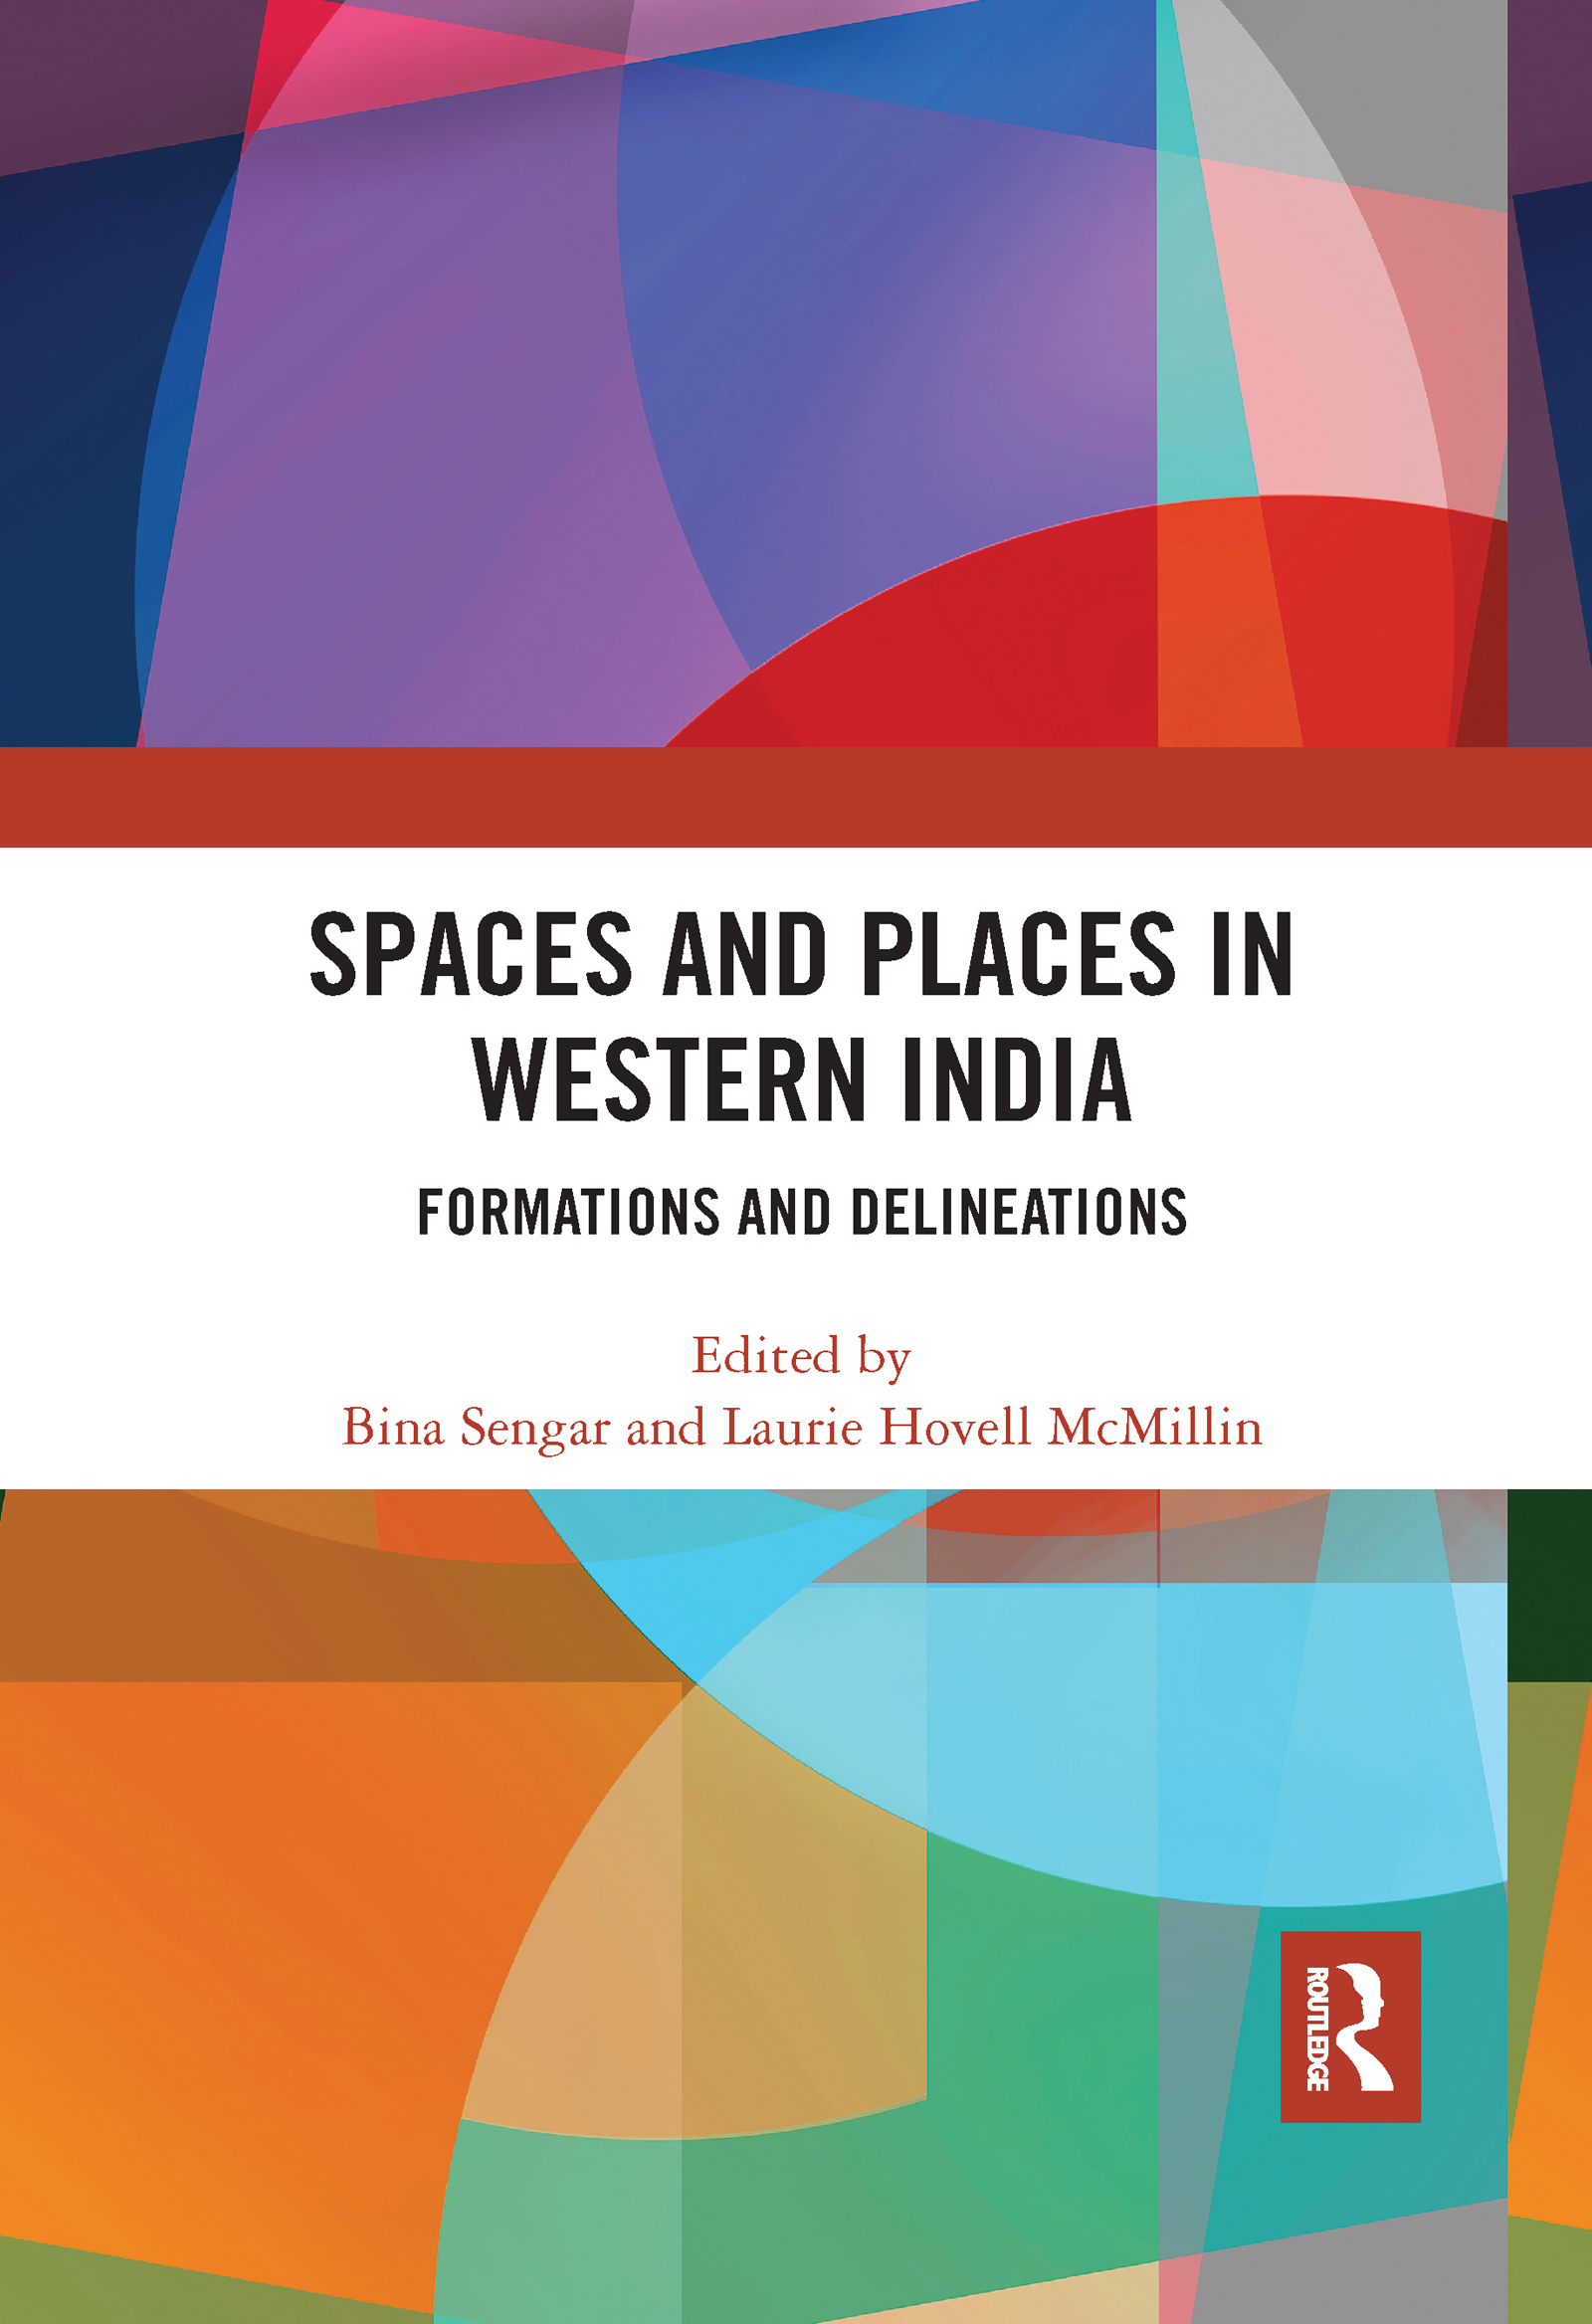 Spaces and Places in Western India